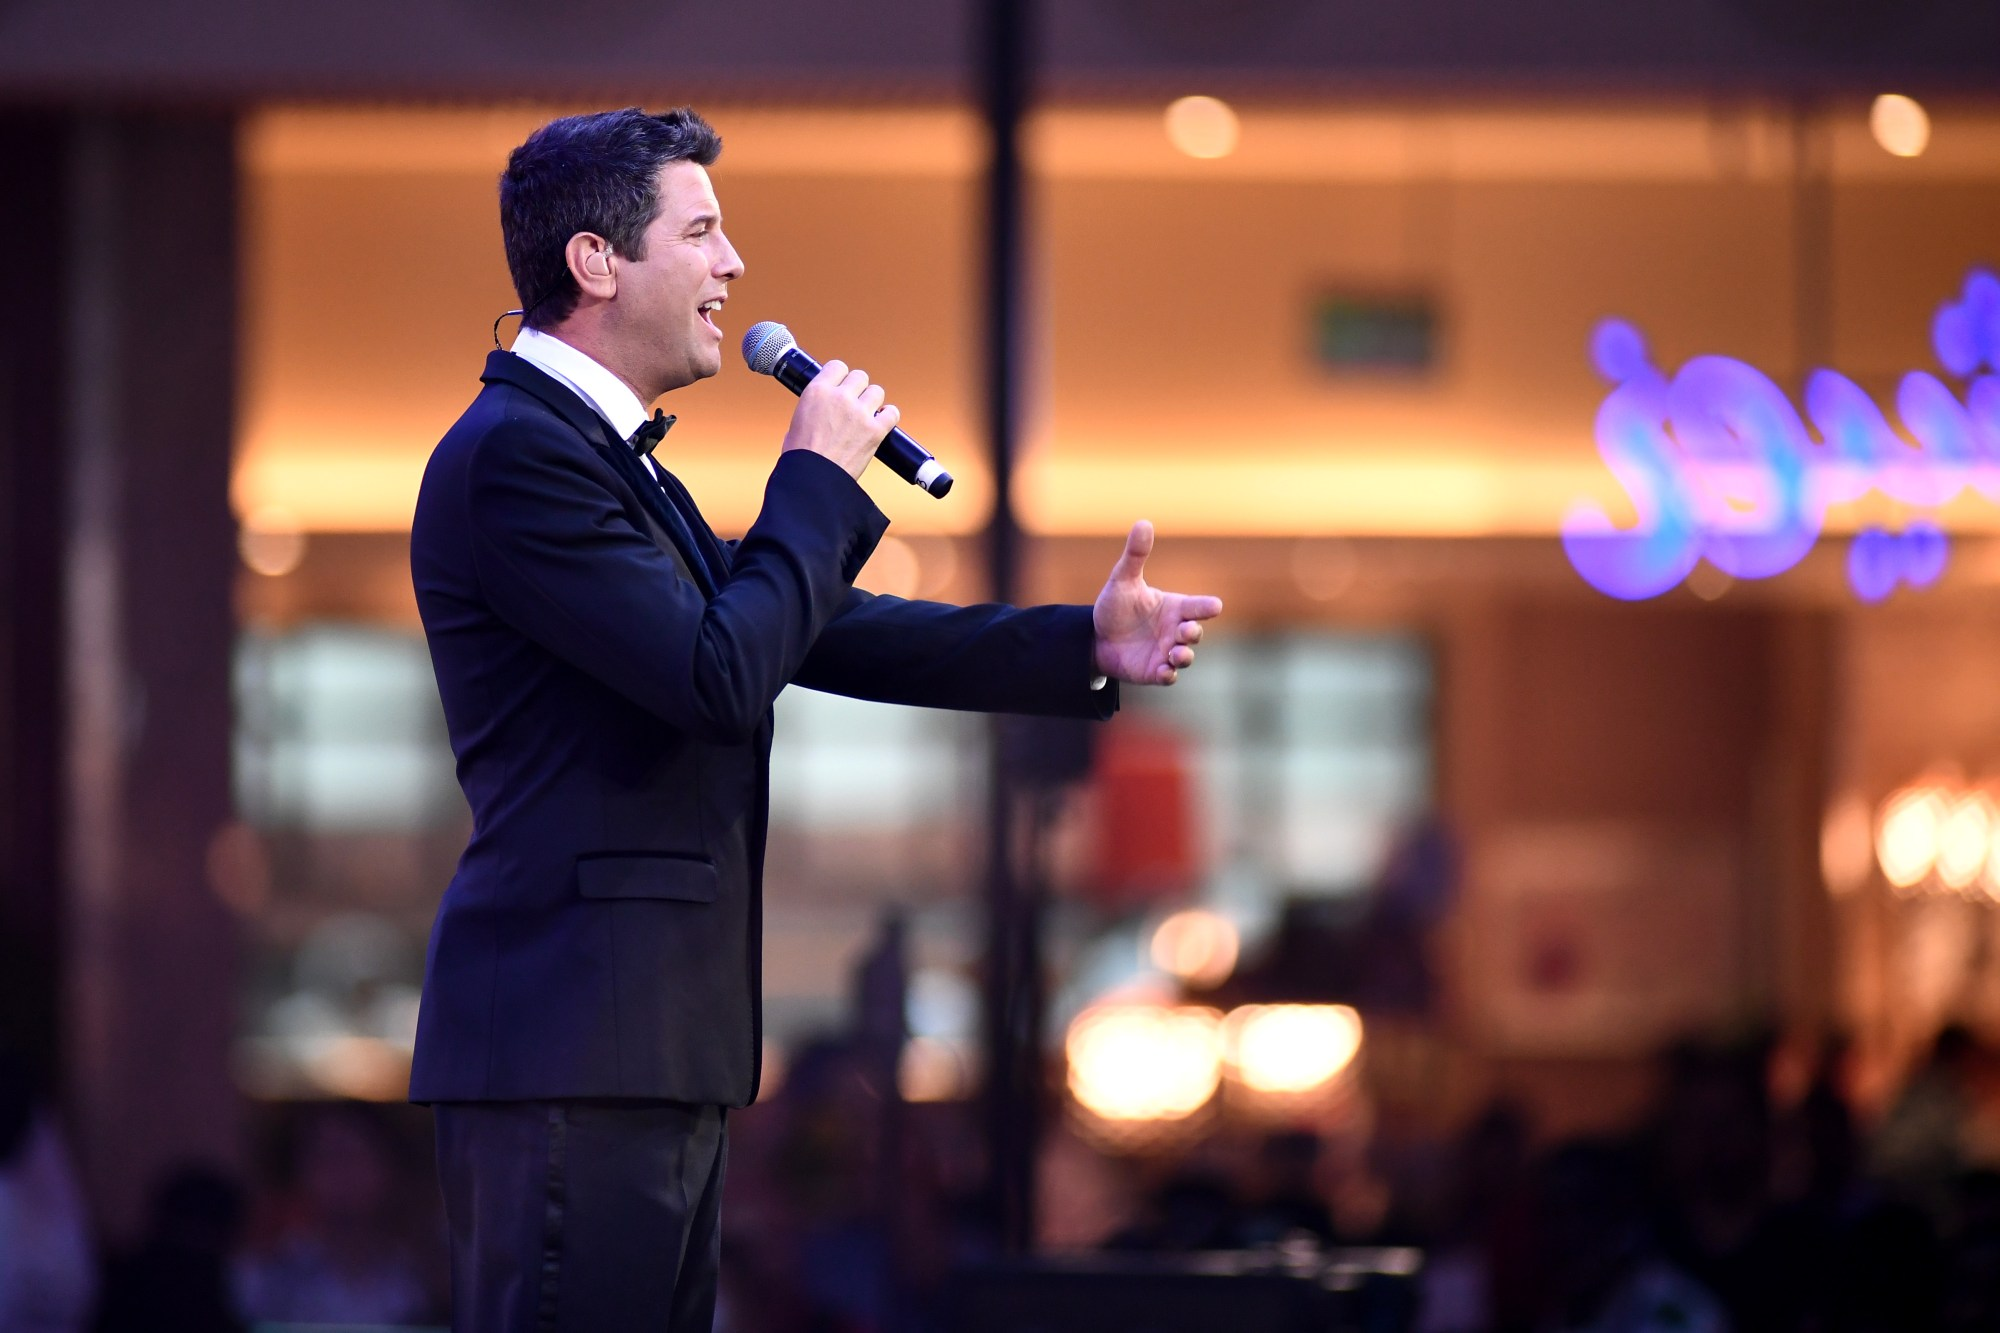 Sebastien Izambard of Il Divo performs during the Grand Opening of The Mall of Qatar at Mall of Qatar on April 8, 2017, in Doha, Qatar. (Ian Gavan/Getty Images for Mall of Qatar)